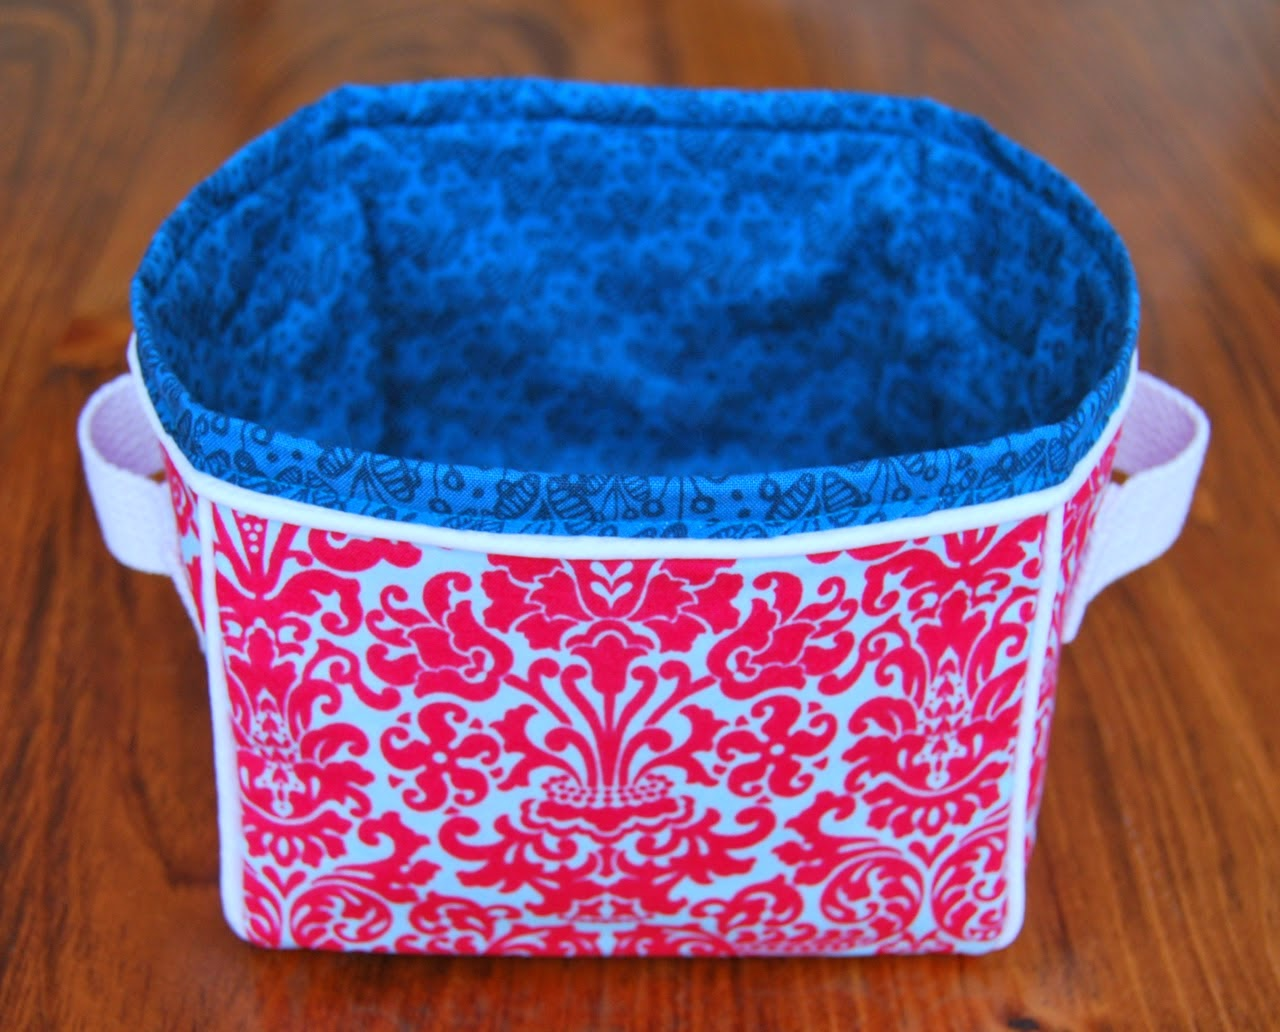 http://roonieranching.blogspot.com/2015/01/boxy-fabric-basket-sewing-tutorial.html